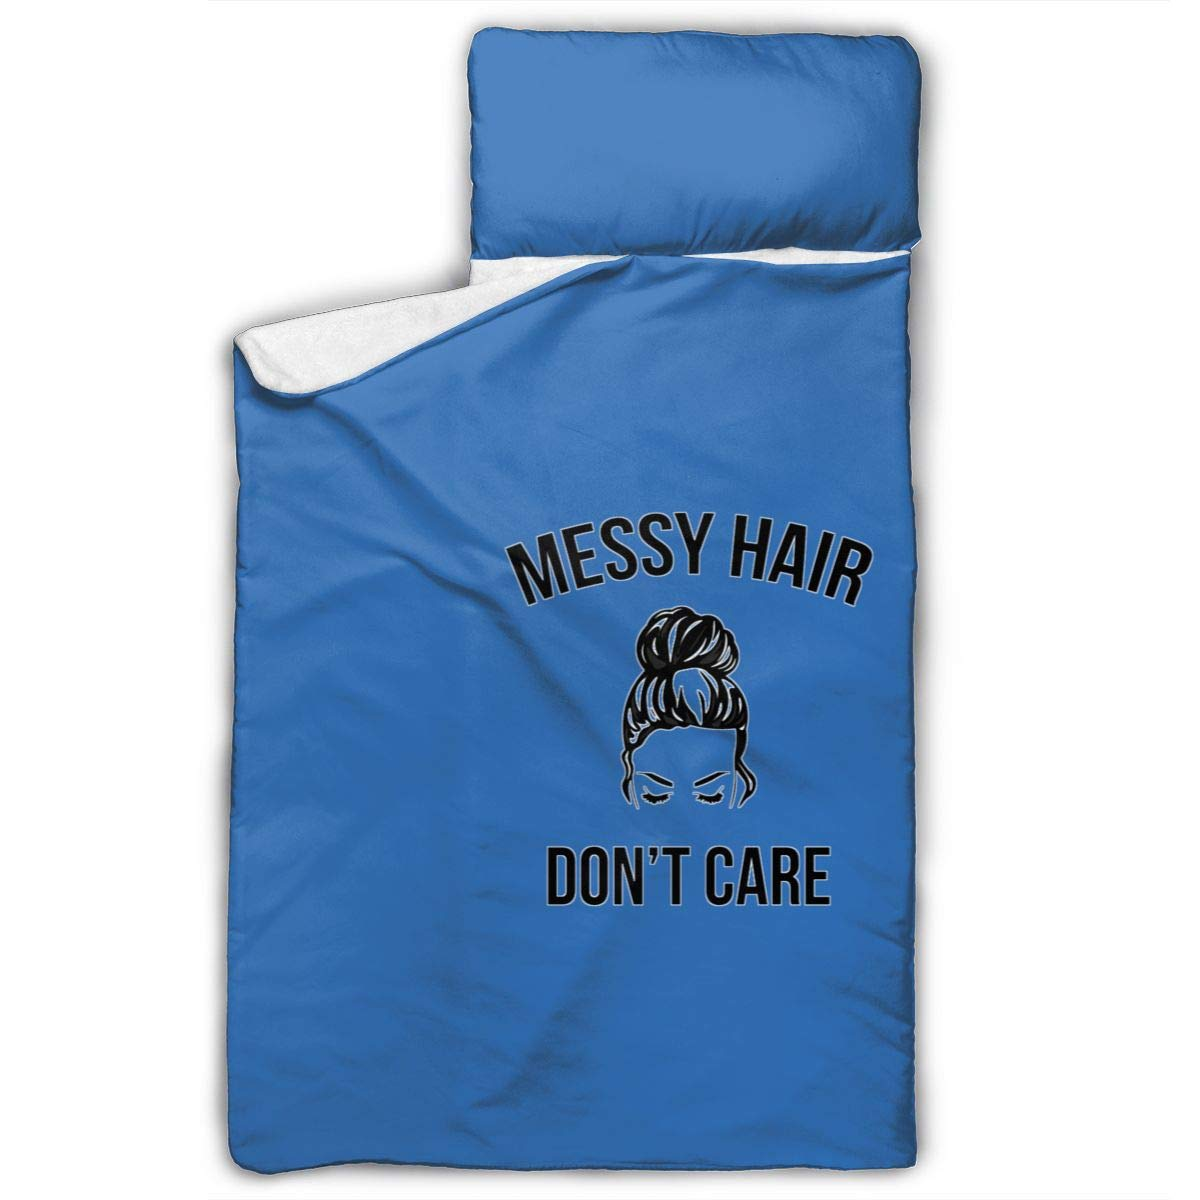 Messy Hair Don't Care Nap Mat with Pillow for Toddler Boys and Girls, Includes Pillow and Blanket Napping at Daycare, Preschool, Or Kindergarten Fits Sleeping Toddlers